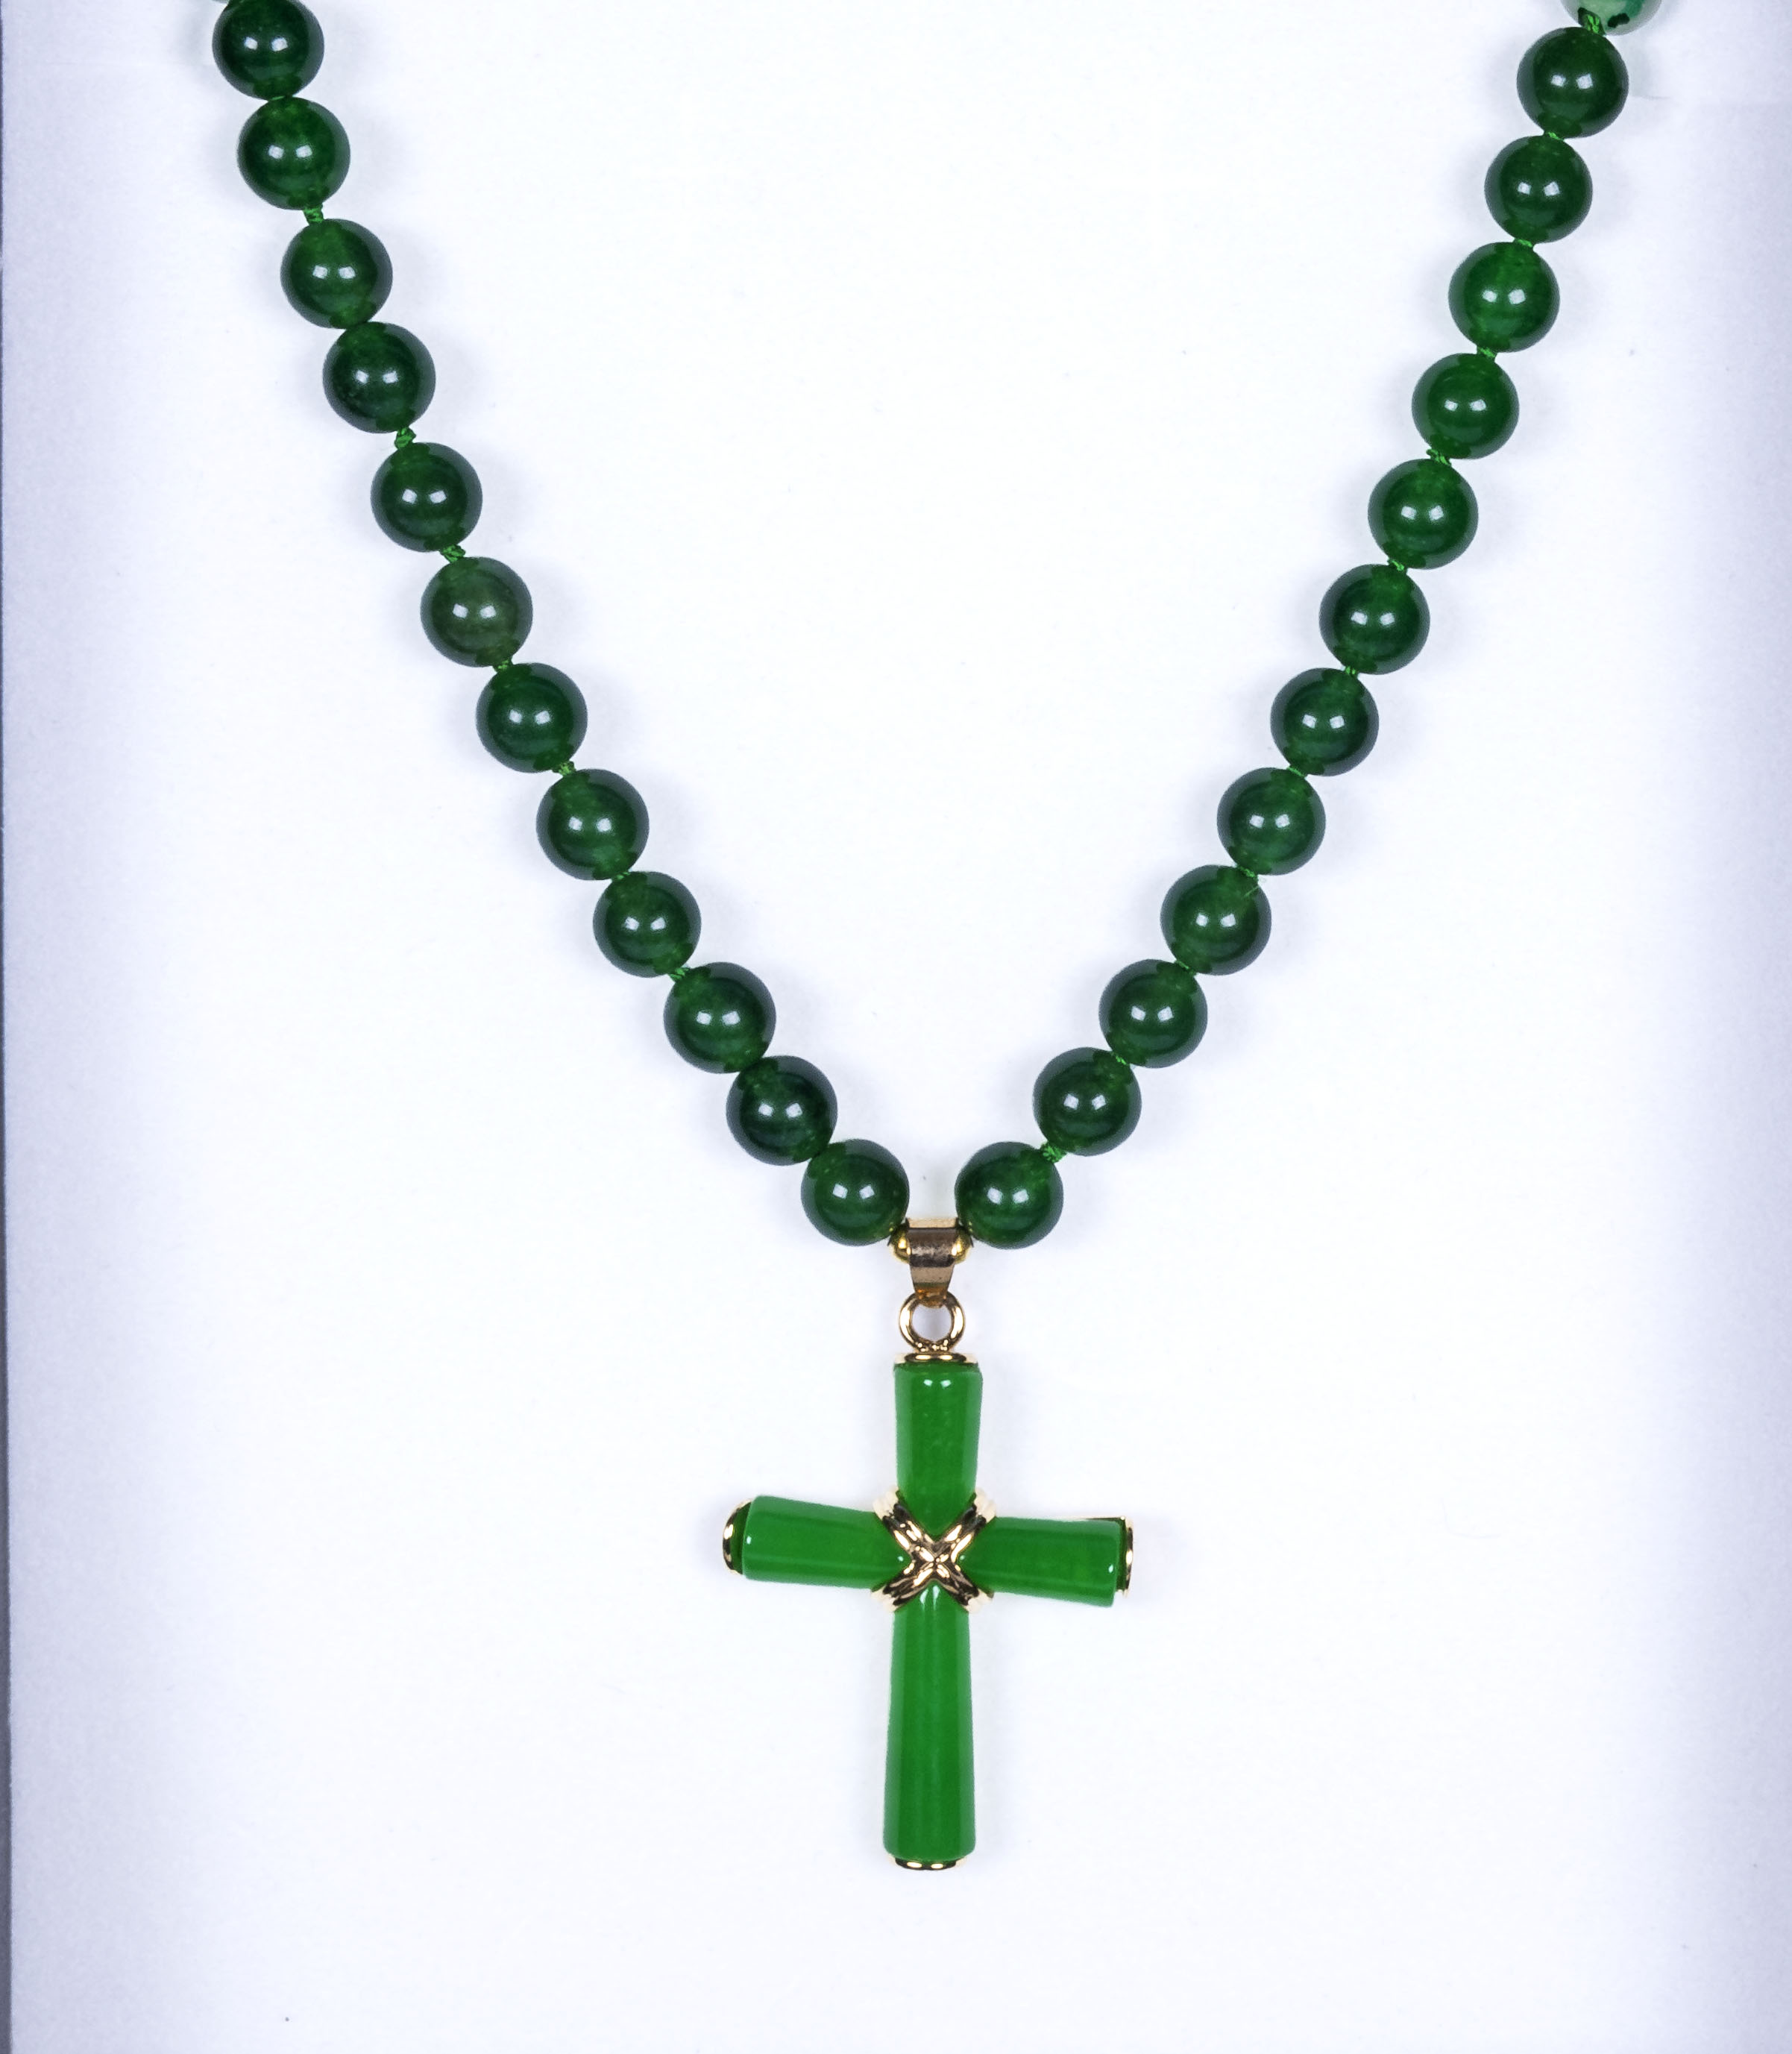 Green agate necklace with cross pendant